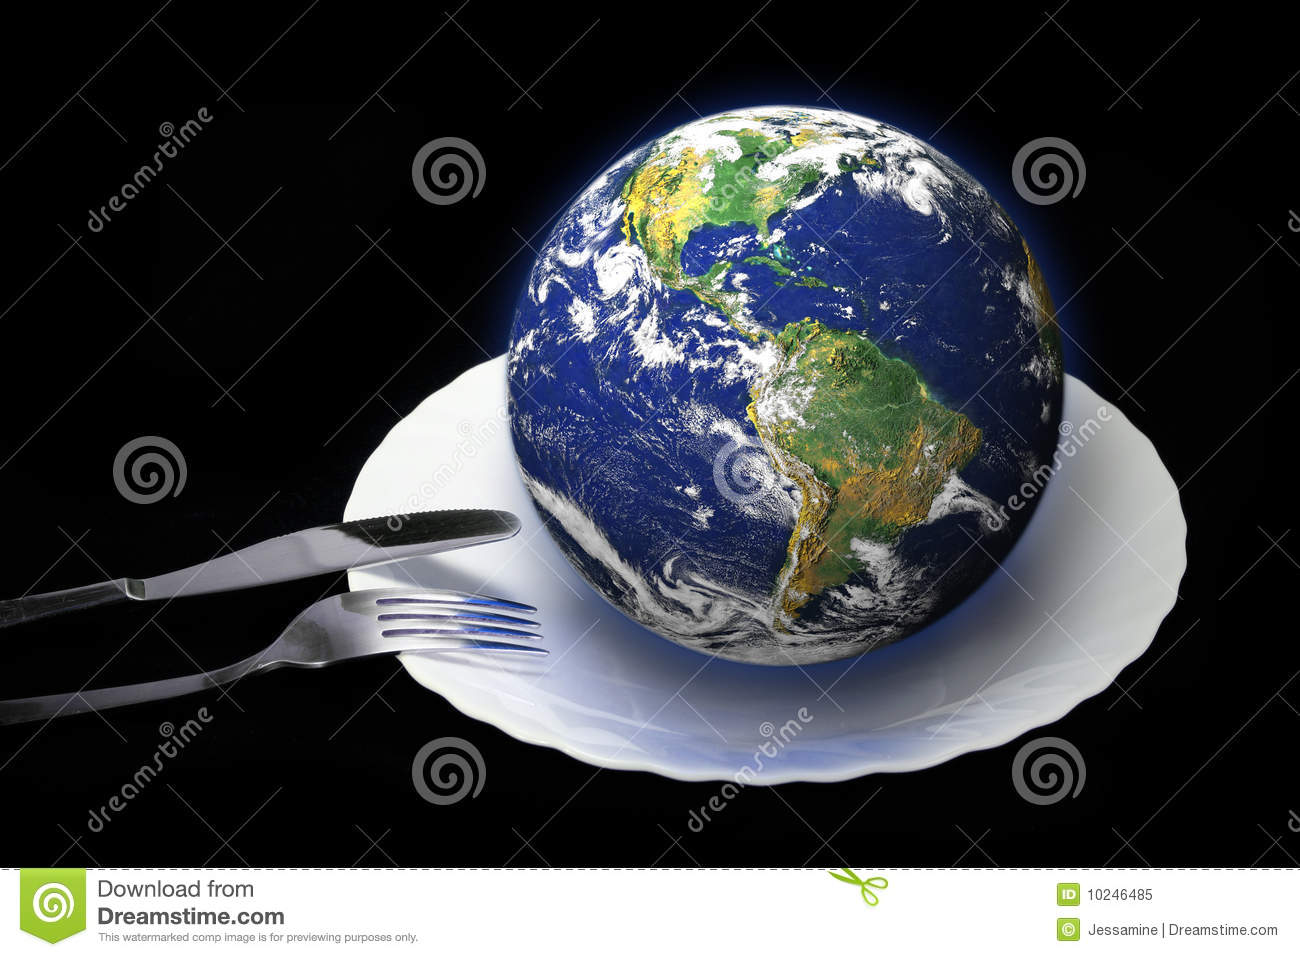 Earth on a plate